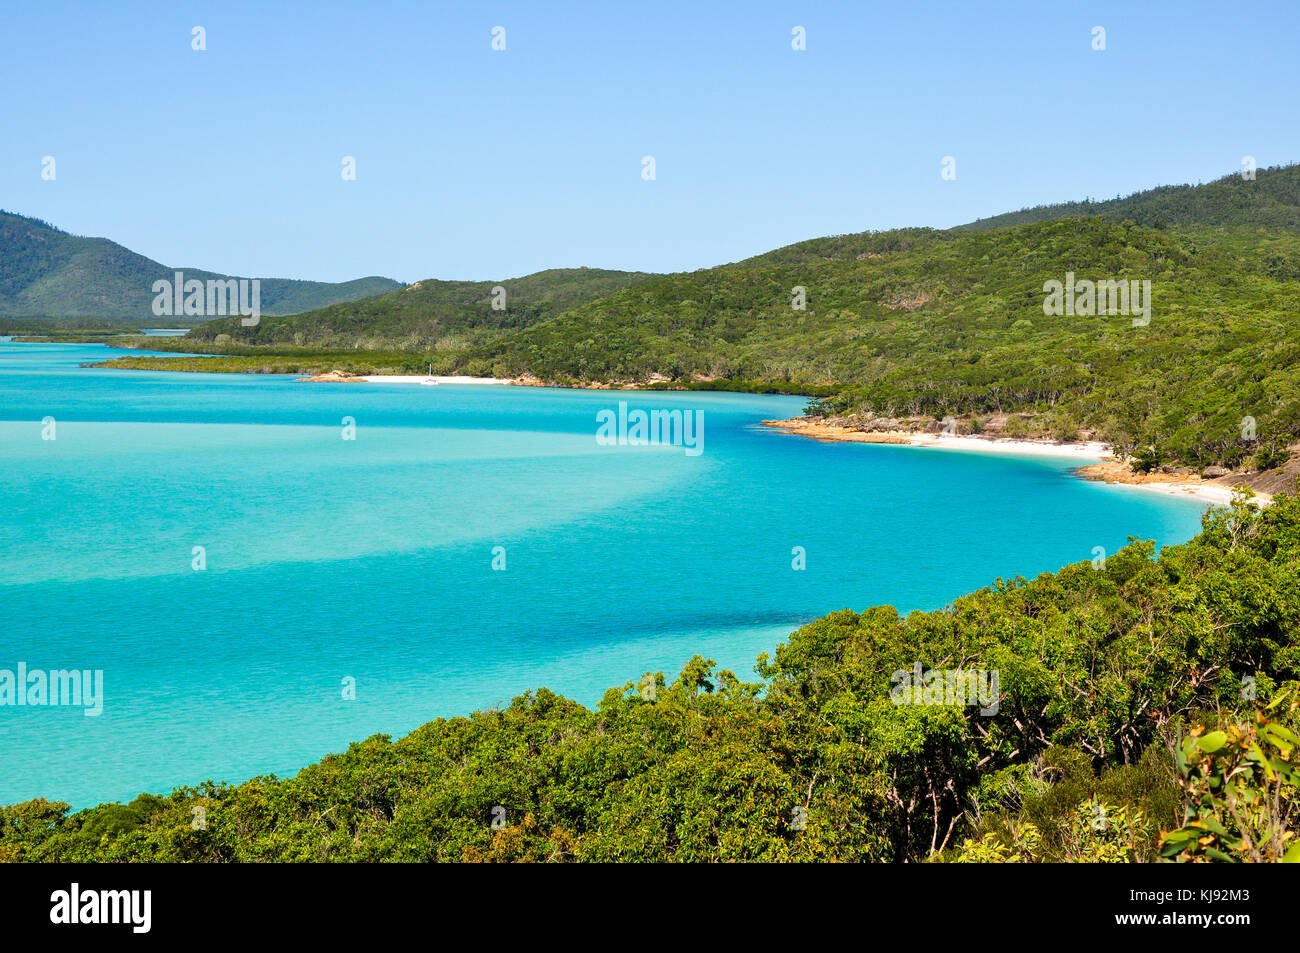 View down onto the tourquoise bay around Whitehaven beach on the Great Barrier Reef in Australia - Stock Image